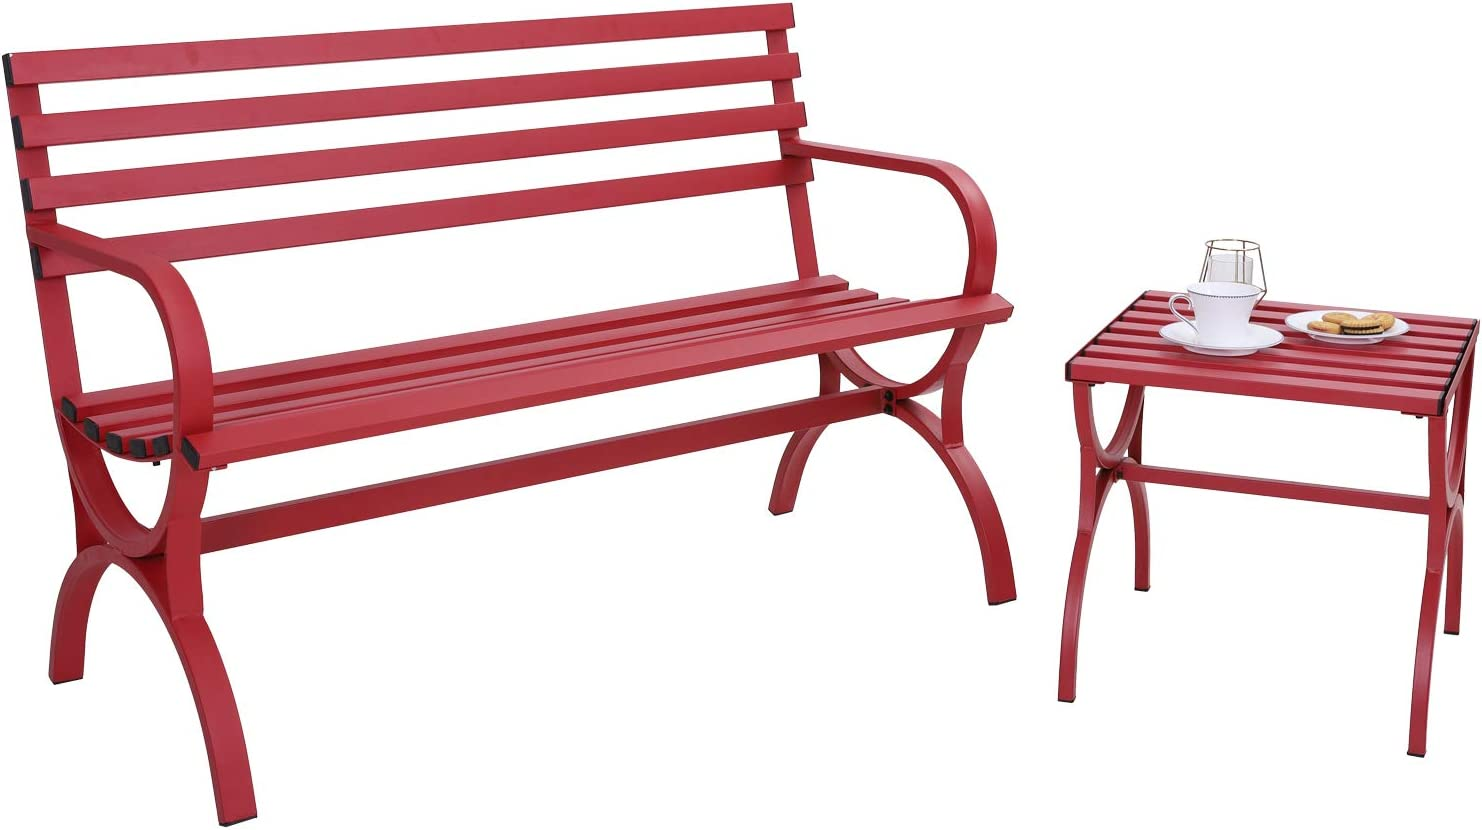 Sophia & William Outdoor Garden Bench Patio Metal Park Bench with Small Side End Table, Steel Frame Furniture with Backrest and Armrests for Porch Yard Lawn Deck, Red